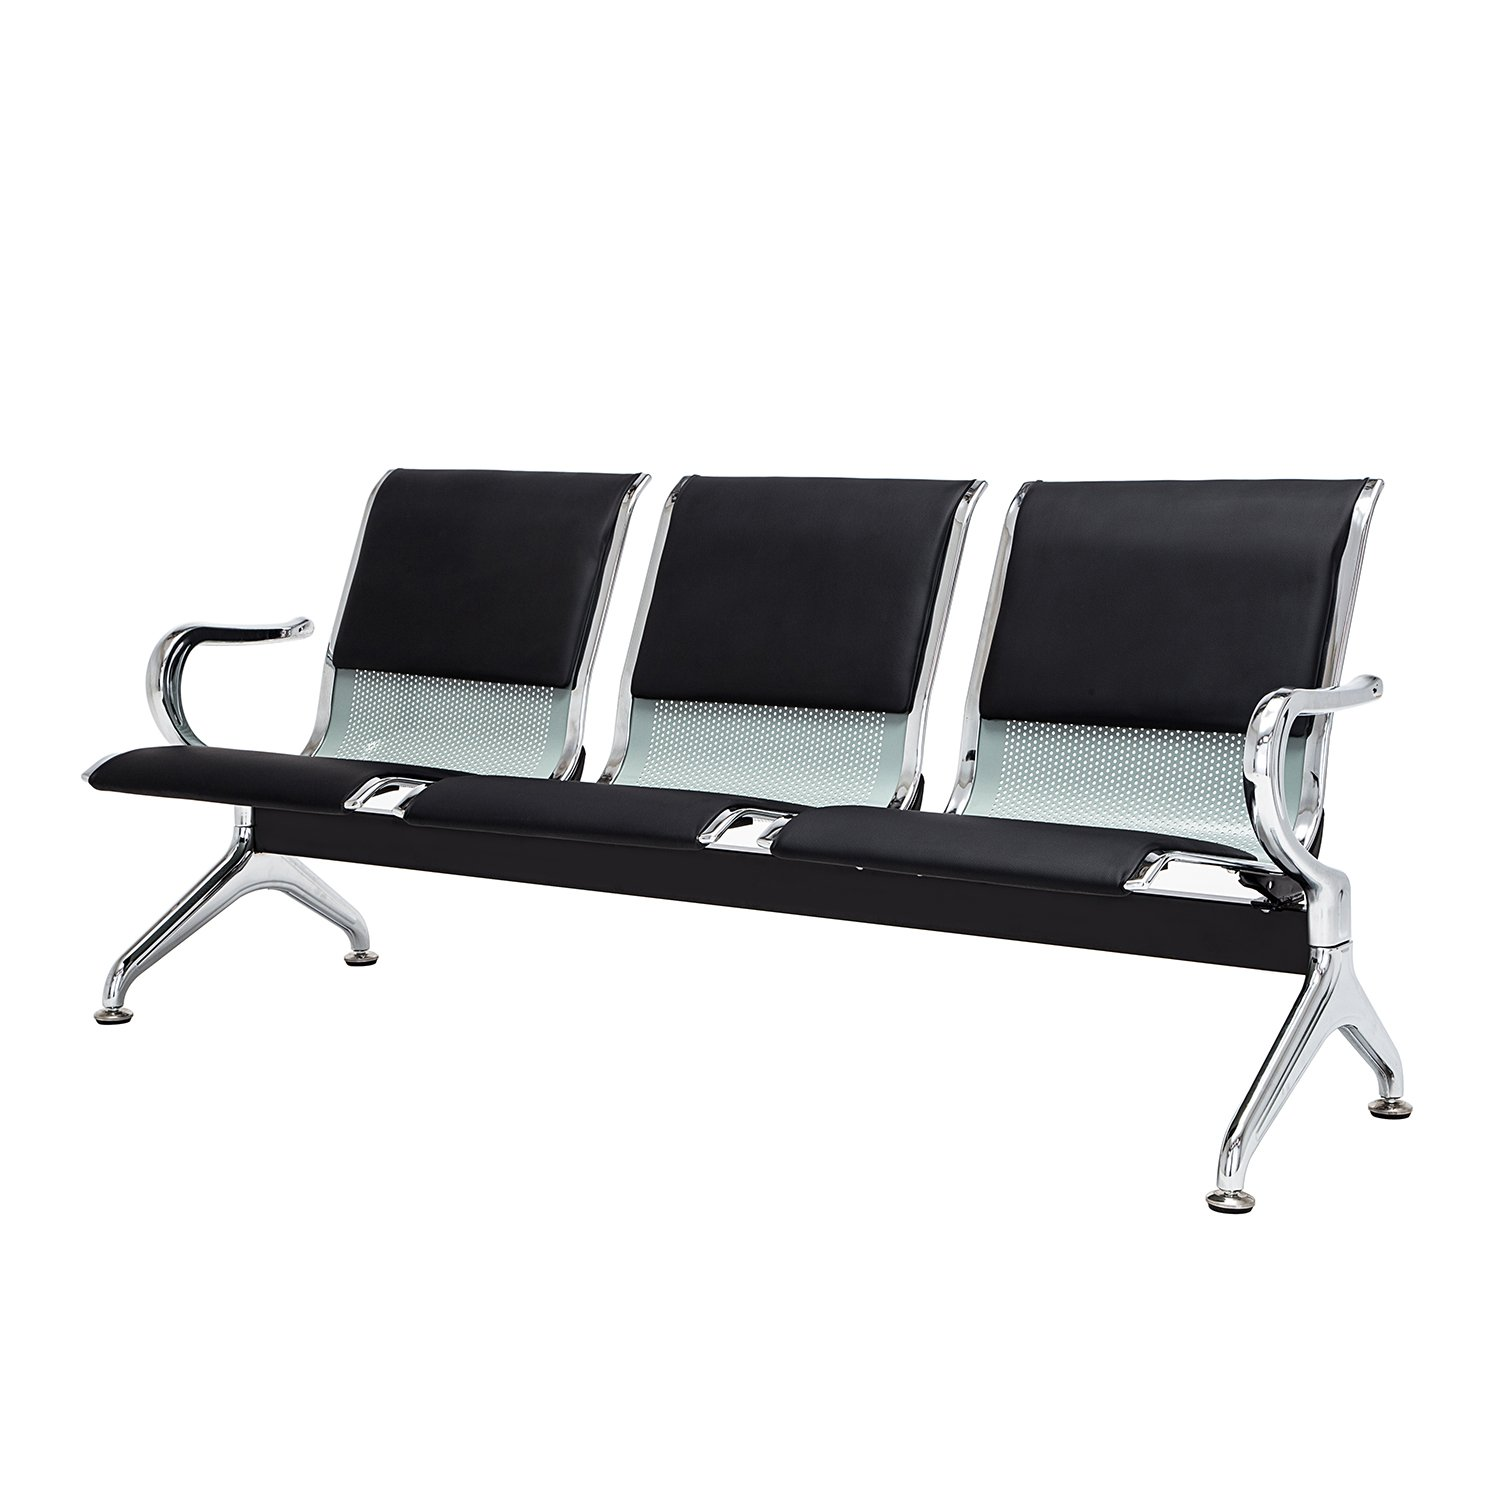 Walcut 3-Seat Reception Area Airport Waiting Room Bench Chair For School,Hospital,Barber shop,Market by WALCUT (Image #9)